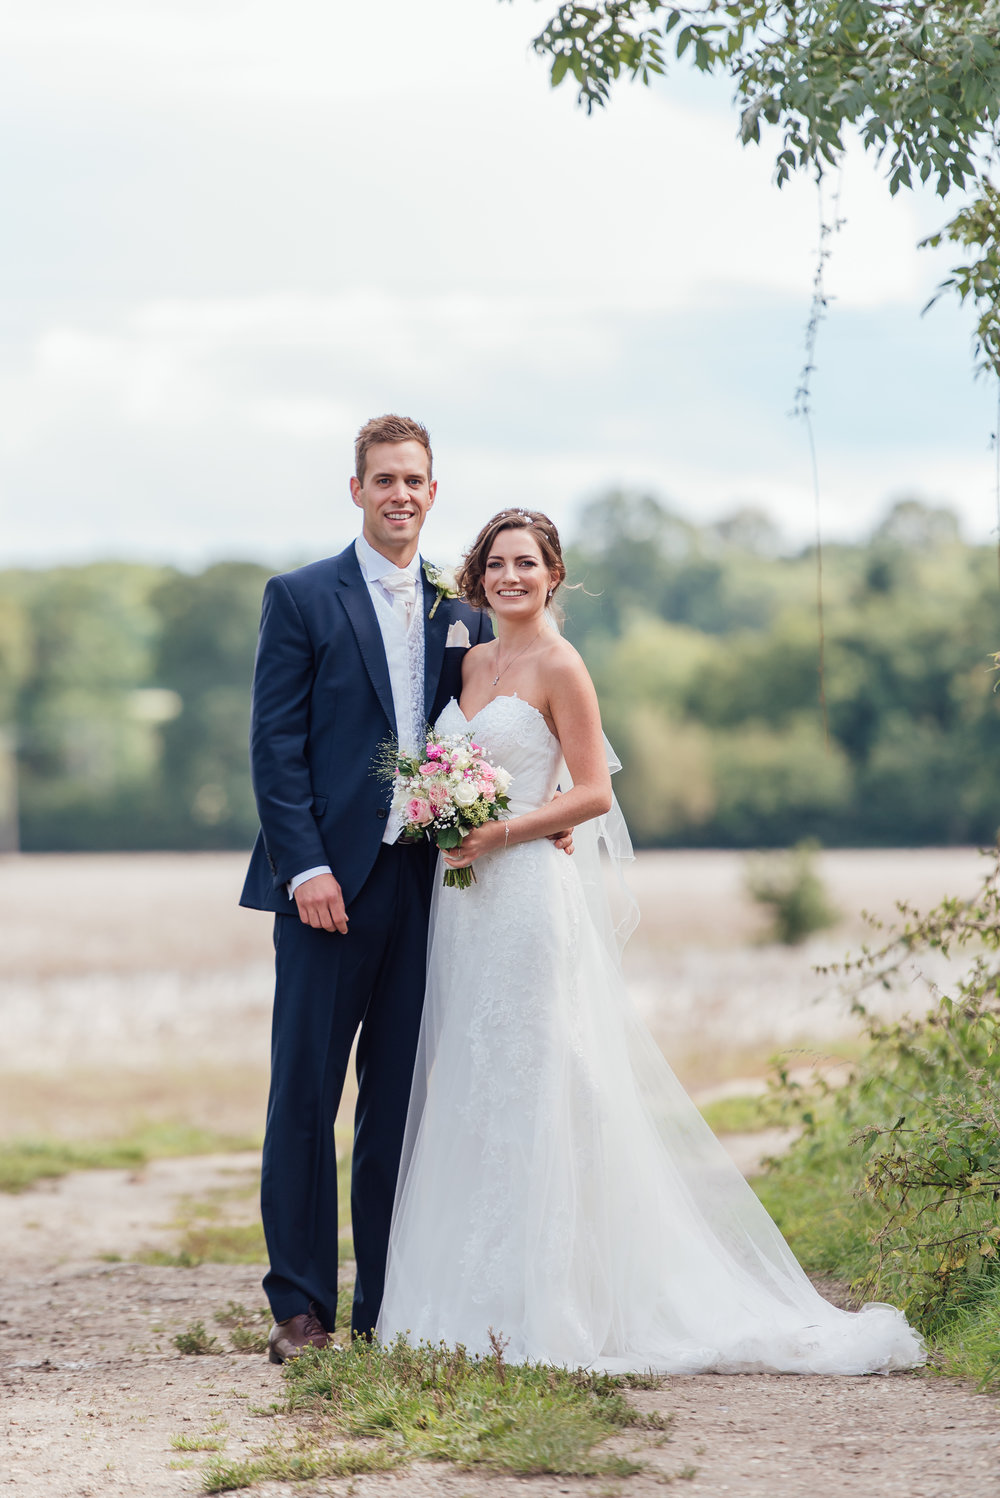 Rotherwick-village-hall-wedding-hampshire / Hampshire-wedding-photographer-hampshire / Amy-james-photography / fleet-wedding-photographer-fleet / village-hall-wedding-hampshire